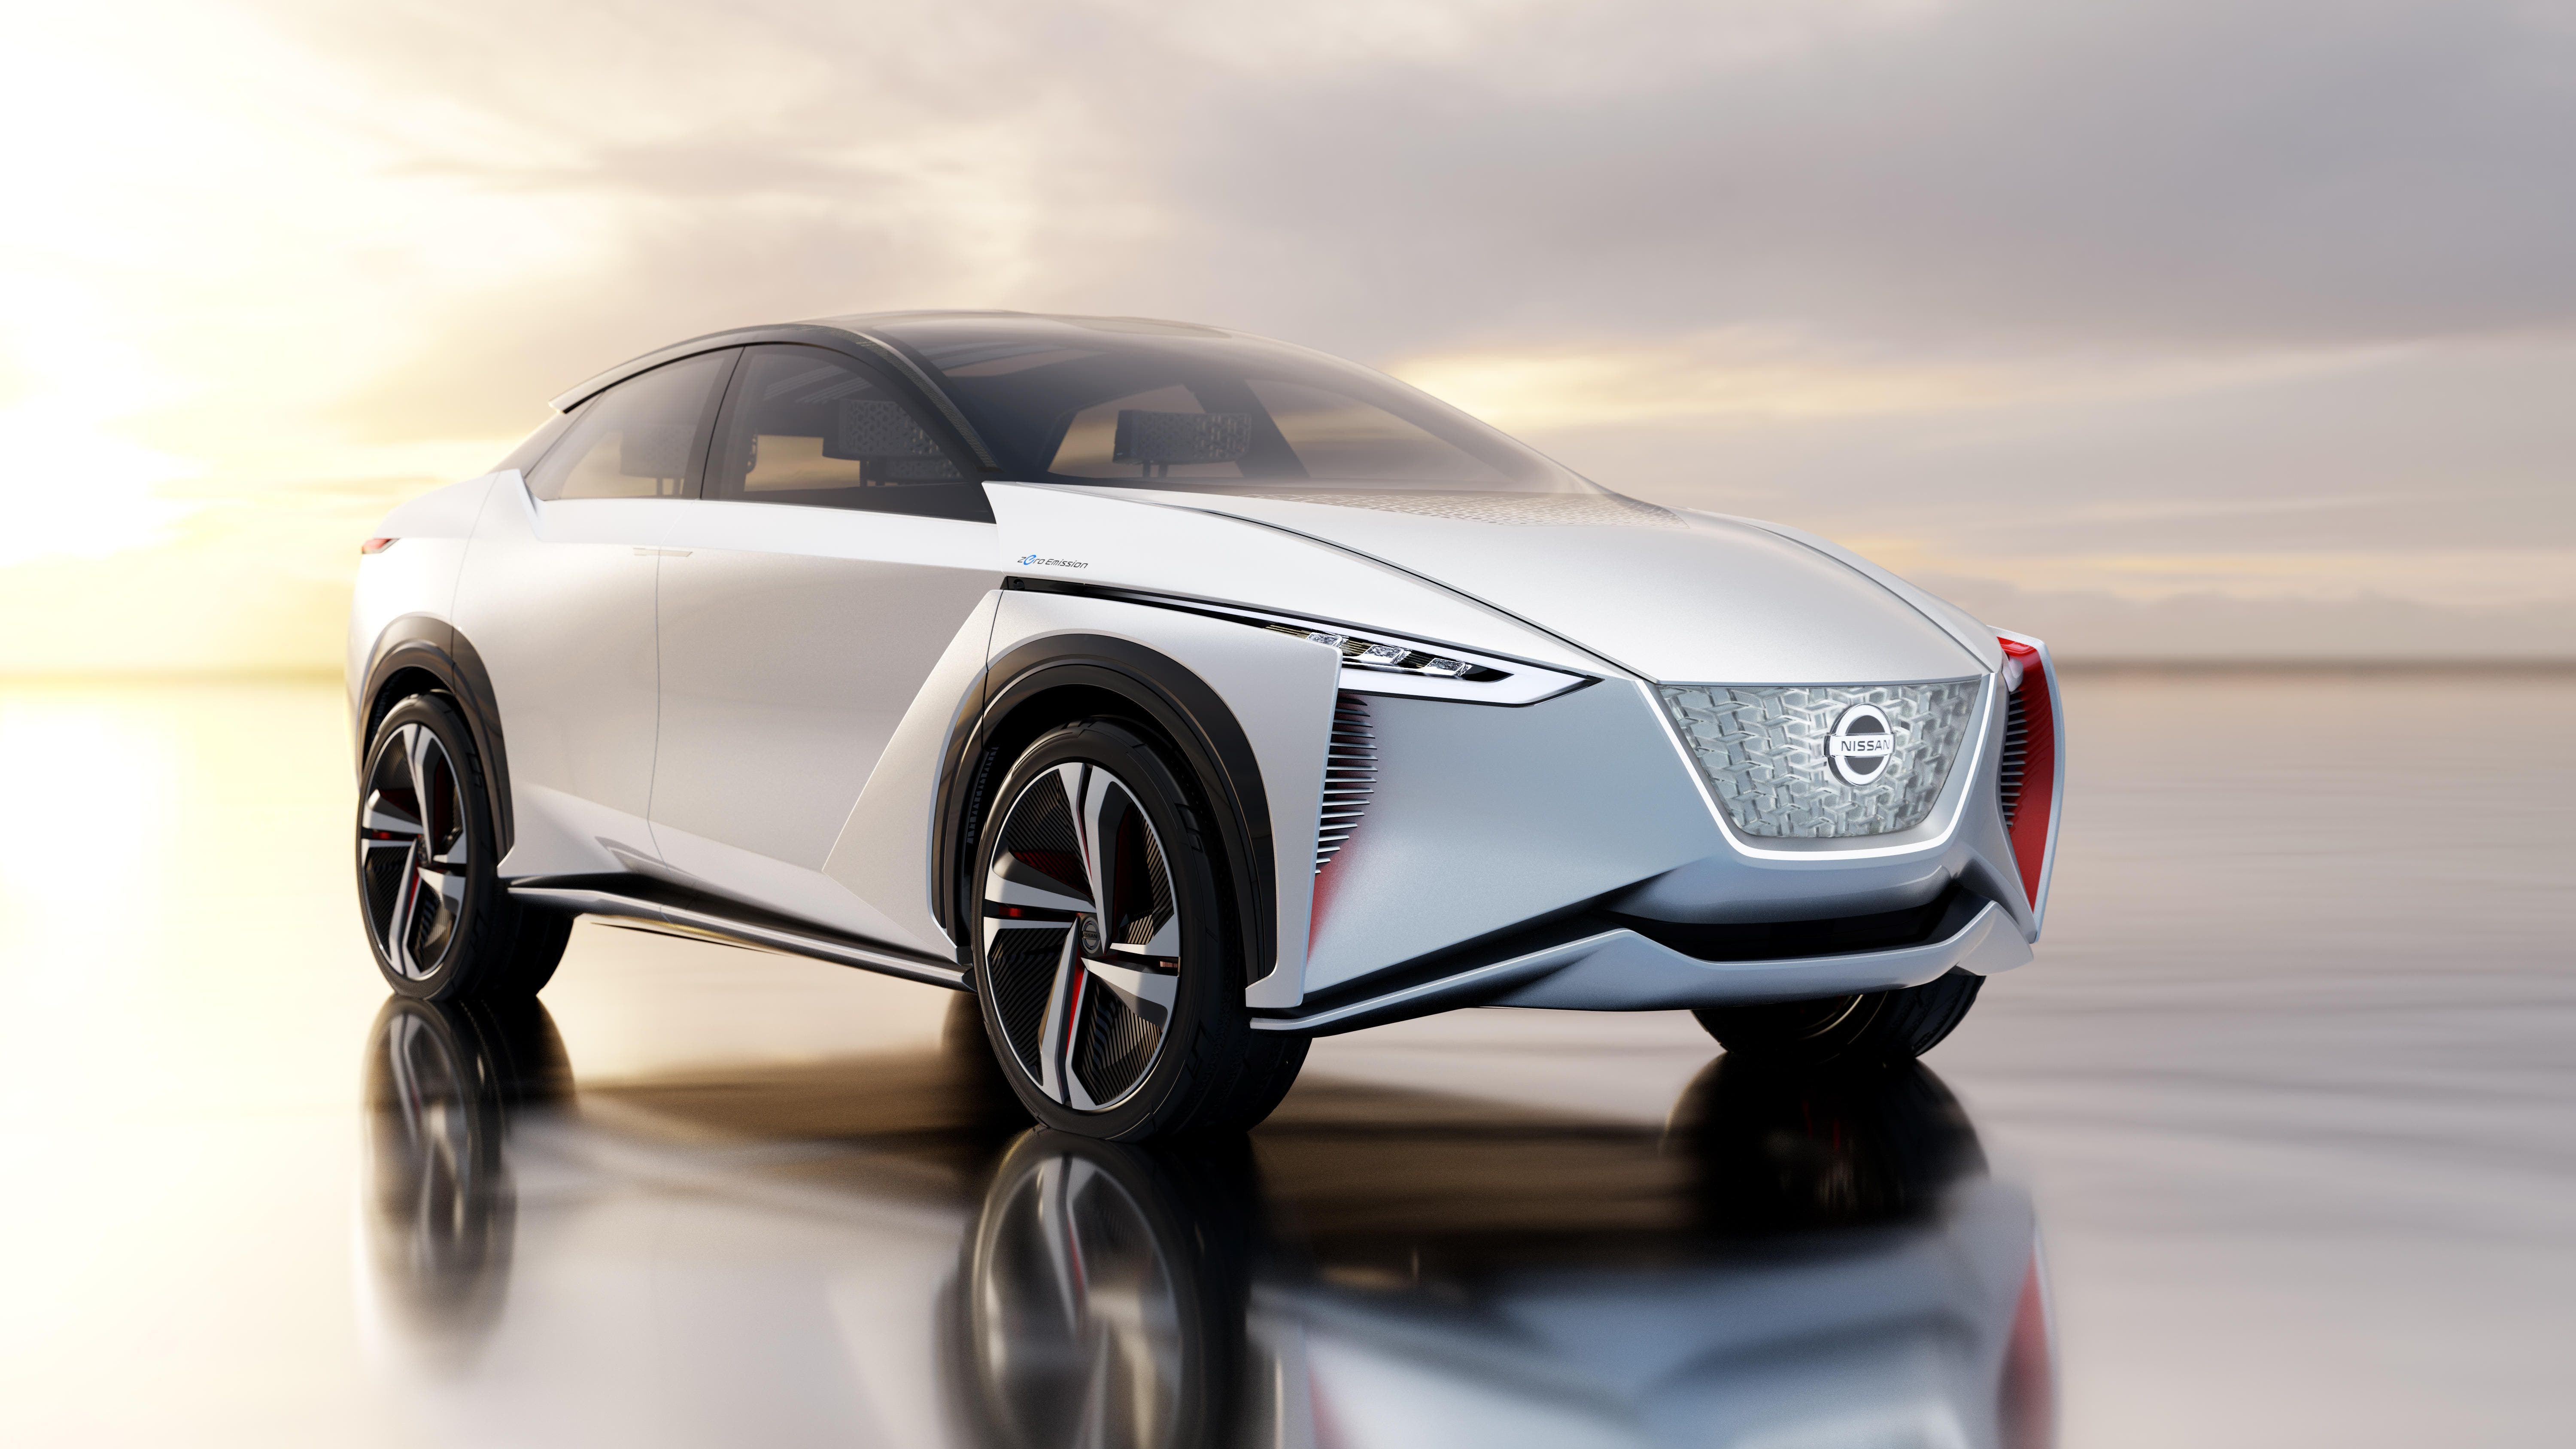 nissan imx electric suv concept is more than a grown up leaf cleantechnica. Black Bedroom Furniture Sets. Home Design Ideas